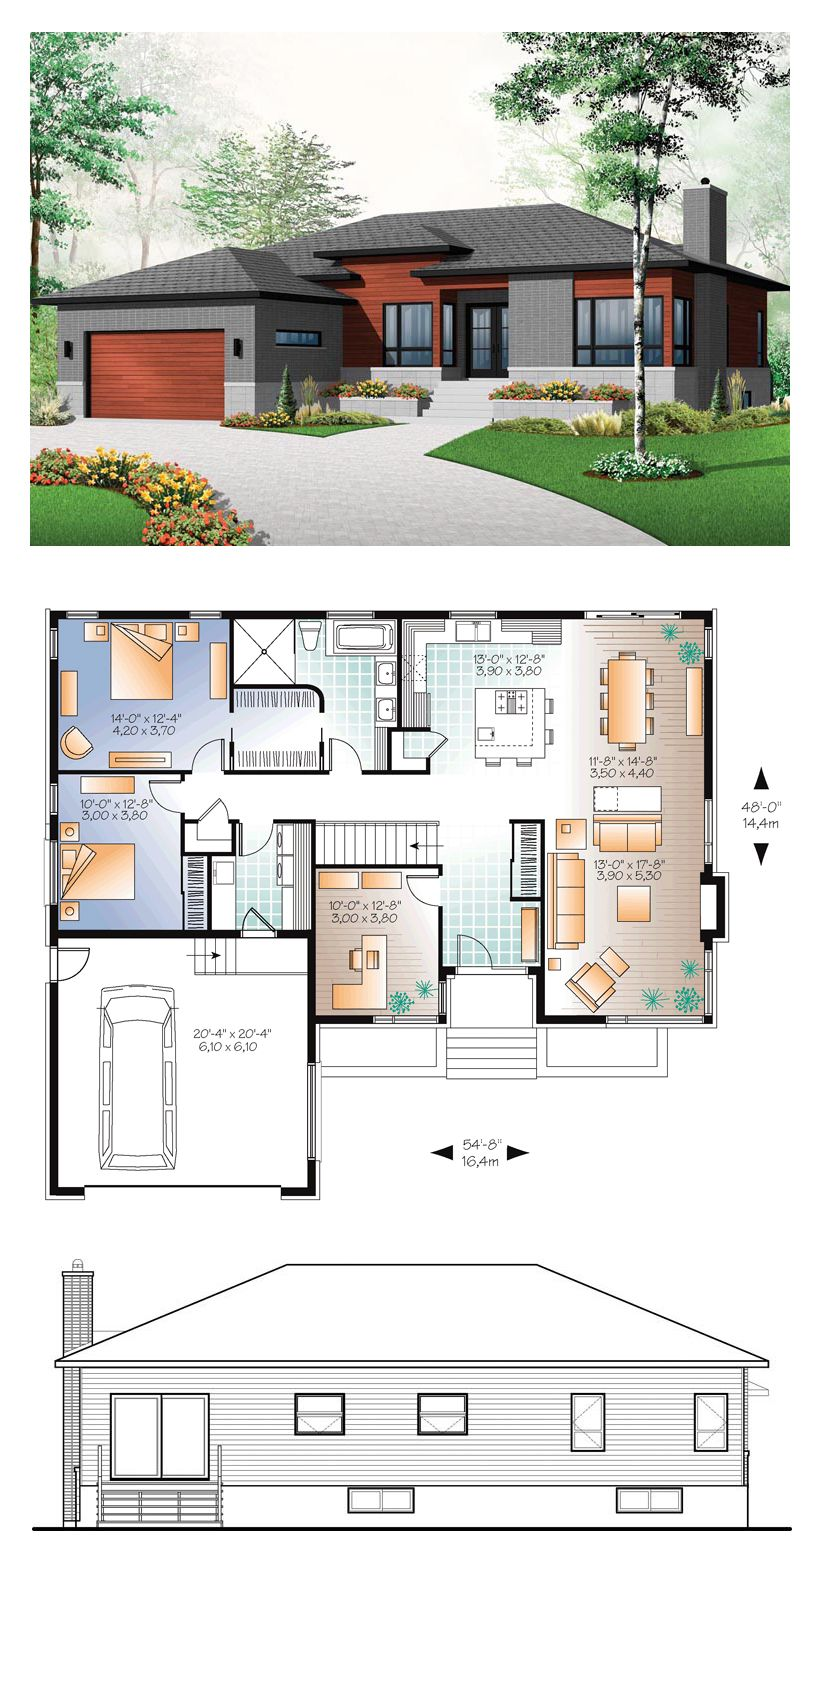 3 Bedroom Houses For Rent In Cleveland Ohio West Side: Contemporary Style House Plan Number 76355 With 3 Bed, 1